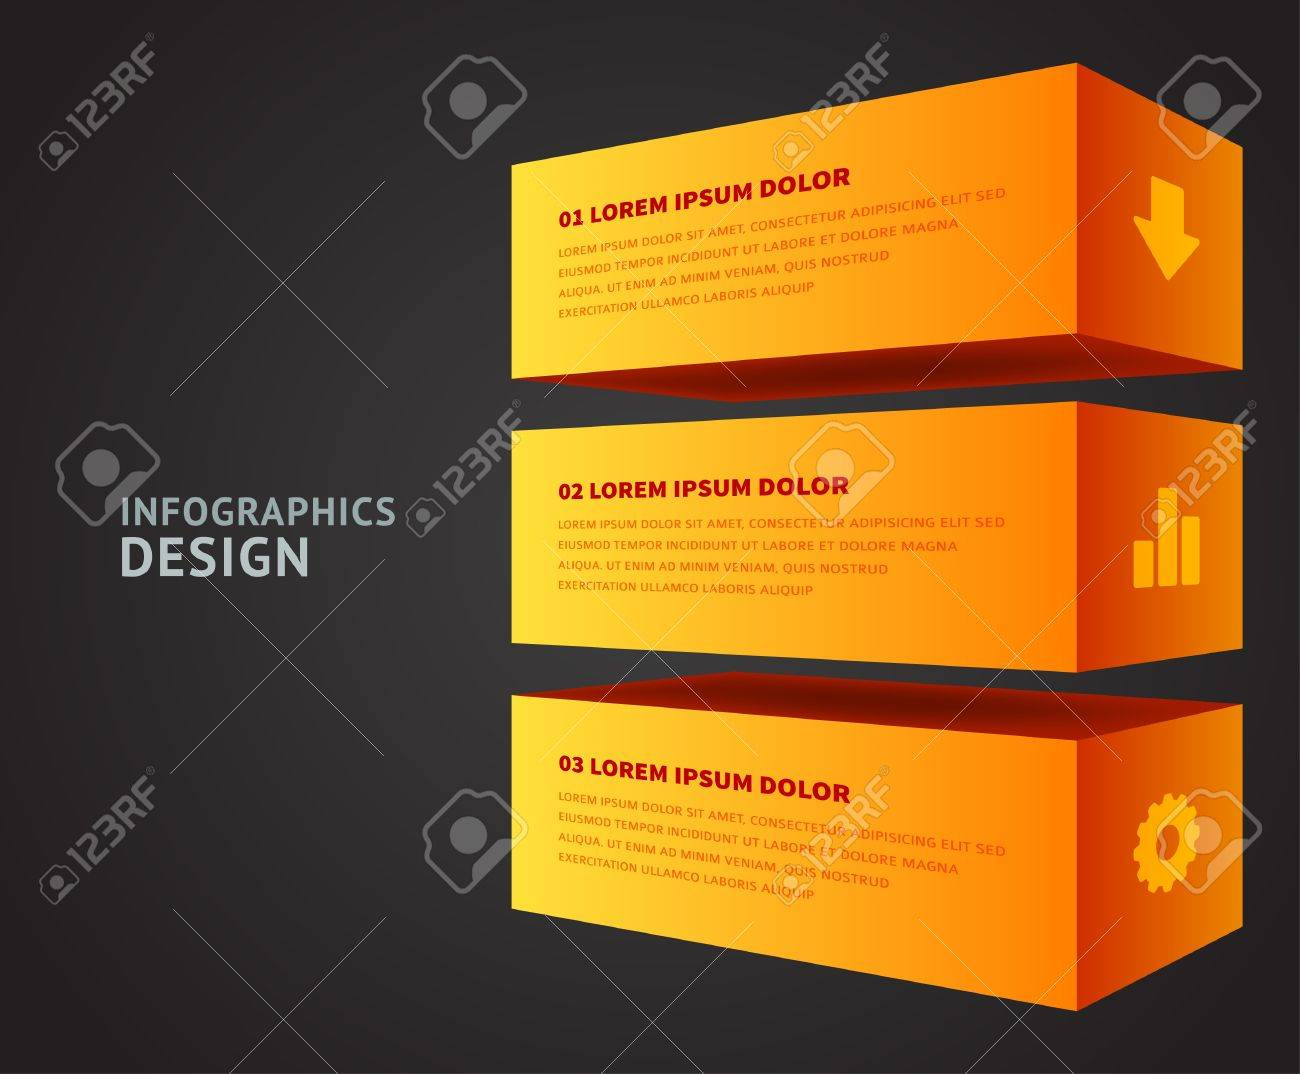 Infographics options design elements  Vector illustration  3d cubes banner numbers and icons website Stock Vector - 21736846